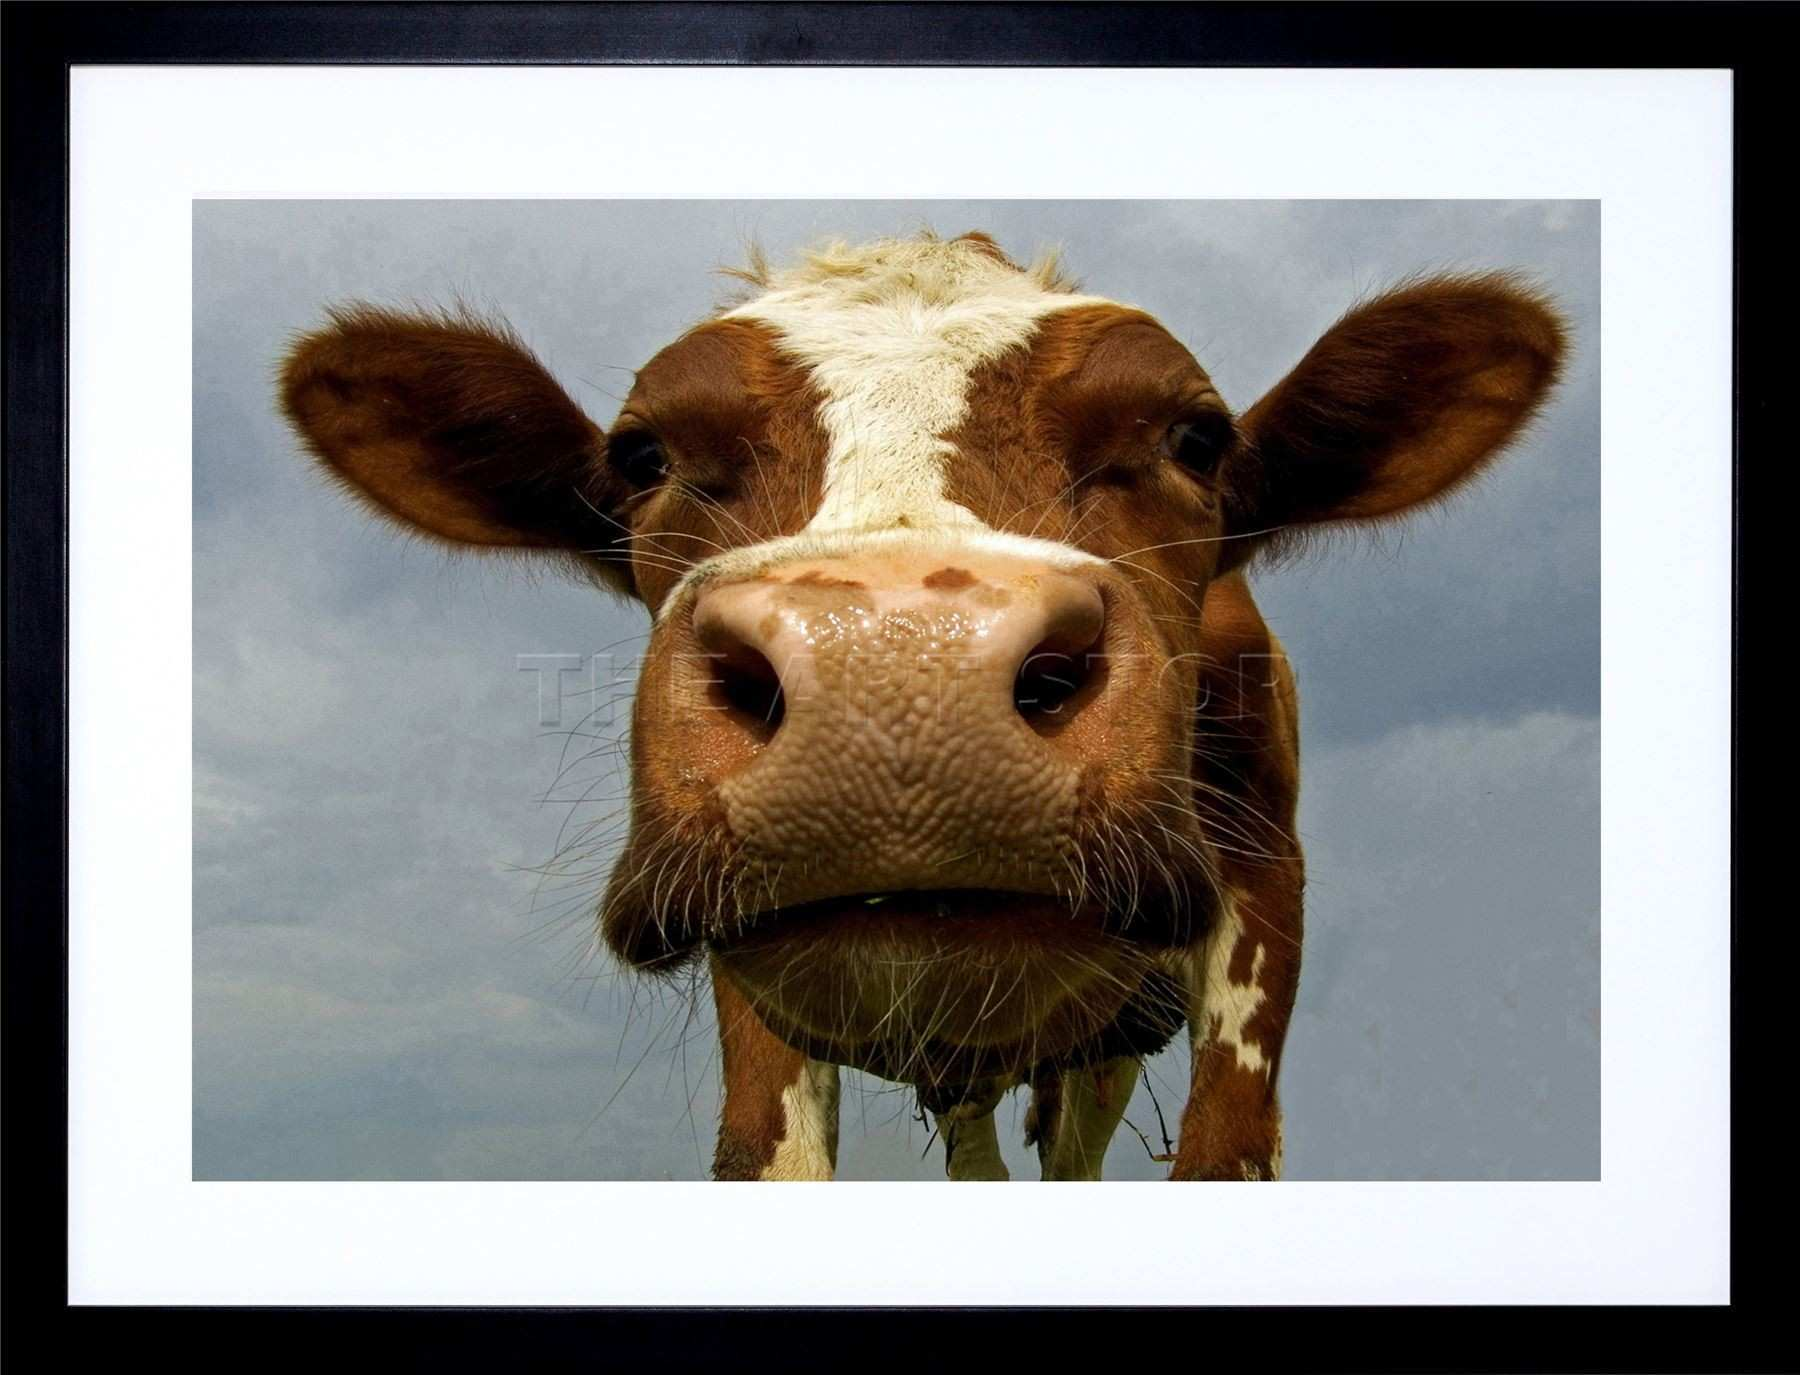 FUNNY COW FARM ANIMAL CLOSE UP PHOTO FRAMED ART PRINT PICTURE